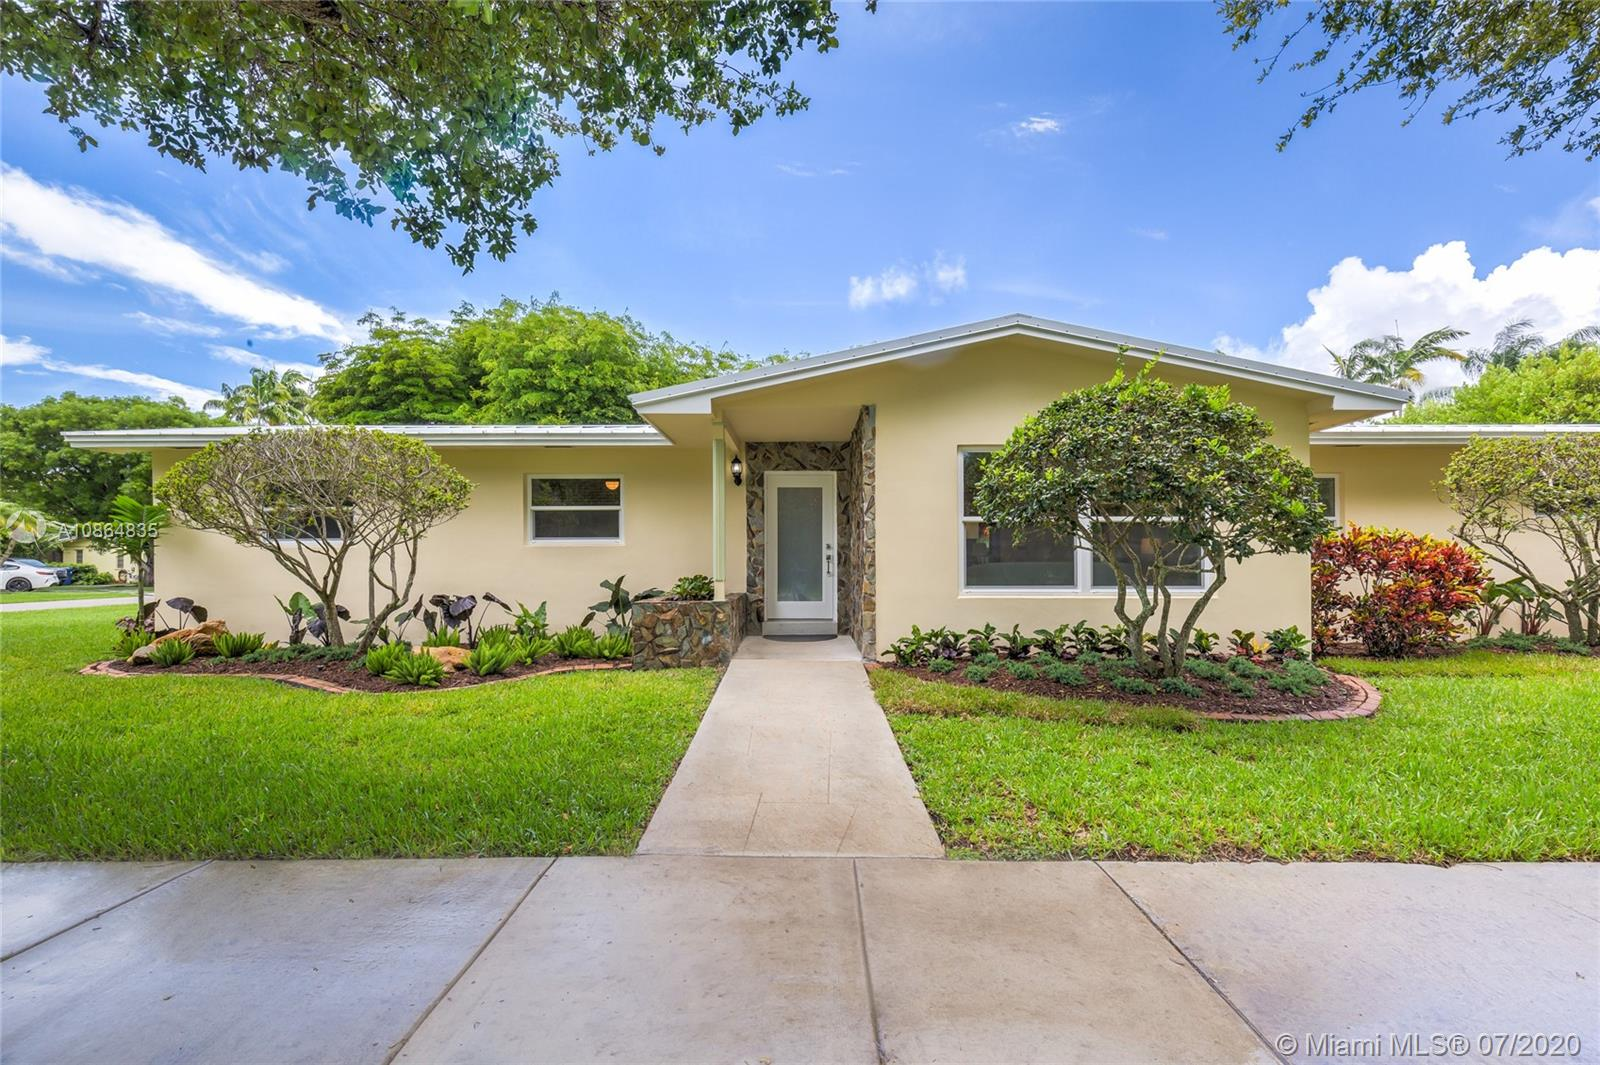 9600 SW 72nd Ct, Pinecrest, Florida 33156, 3 Bedrooms Bedrooms, ,2 BathroomsBathrooms,Residential,For Sale,9600 SW 72nd Ct,A10864835